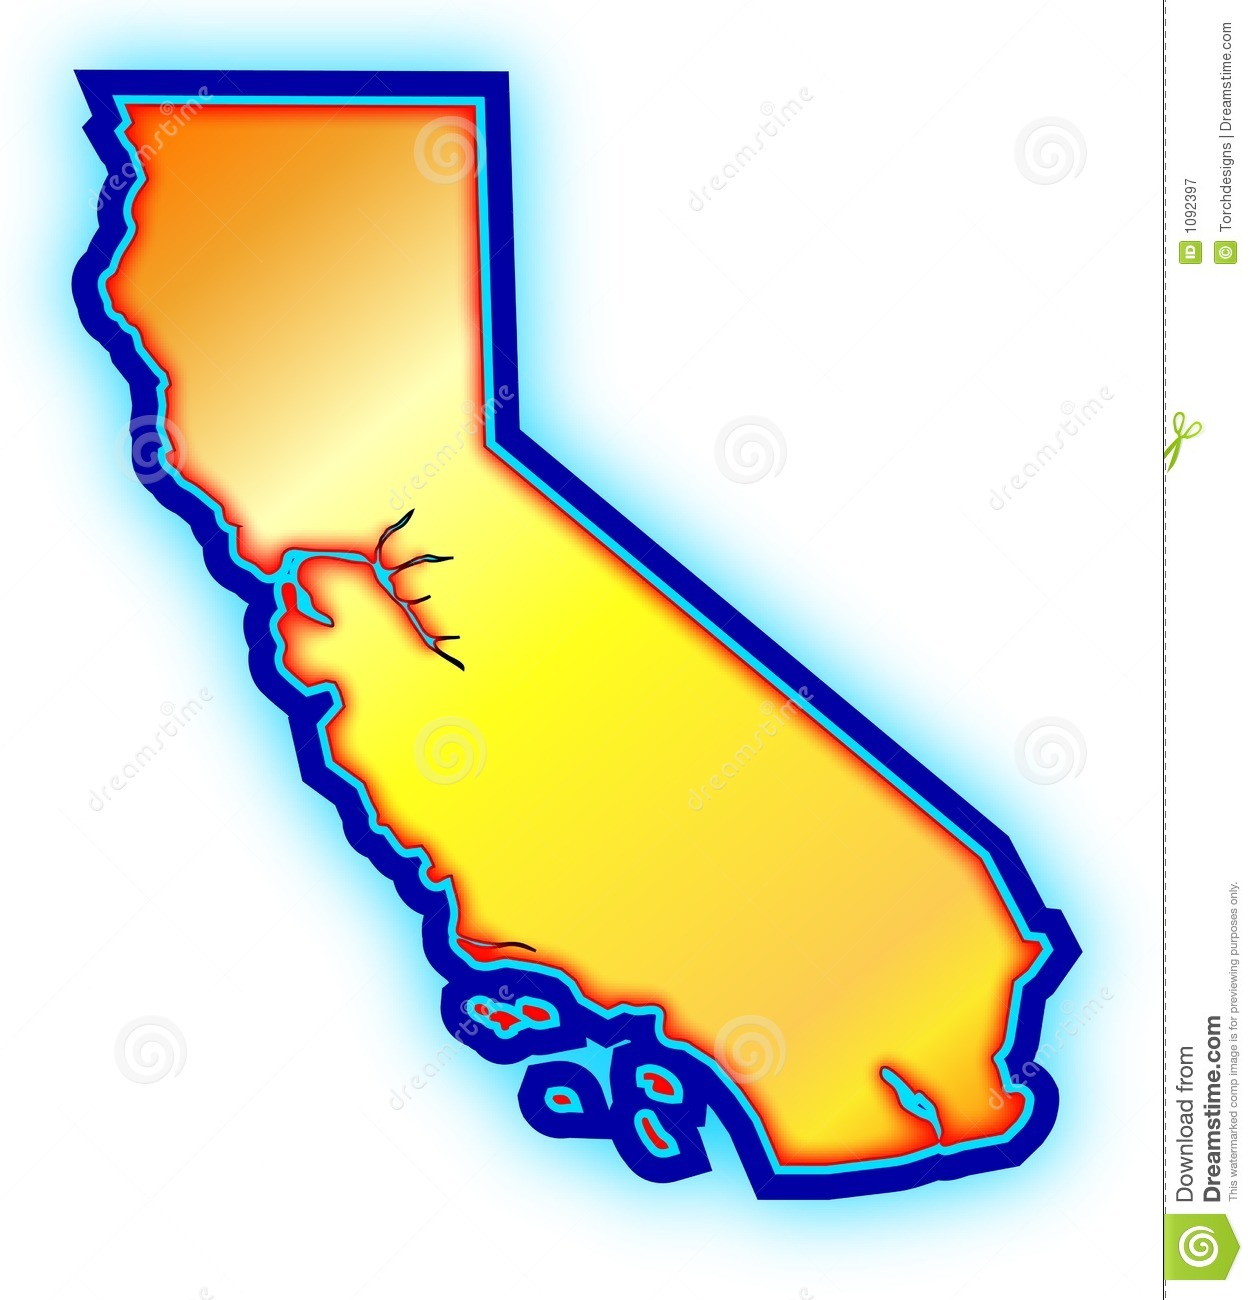 California map. Clipart free download best